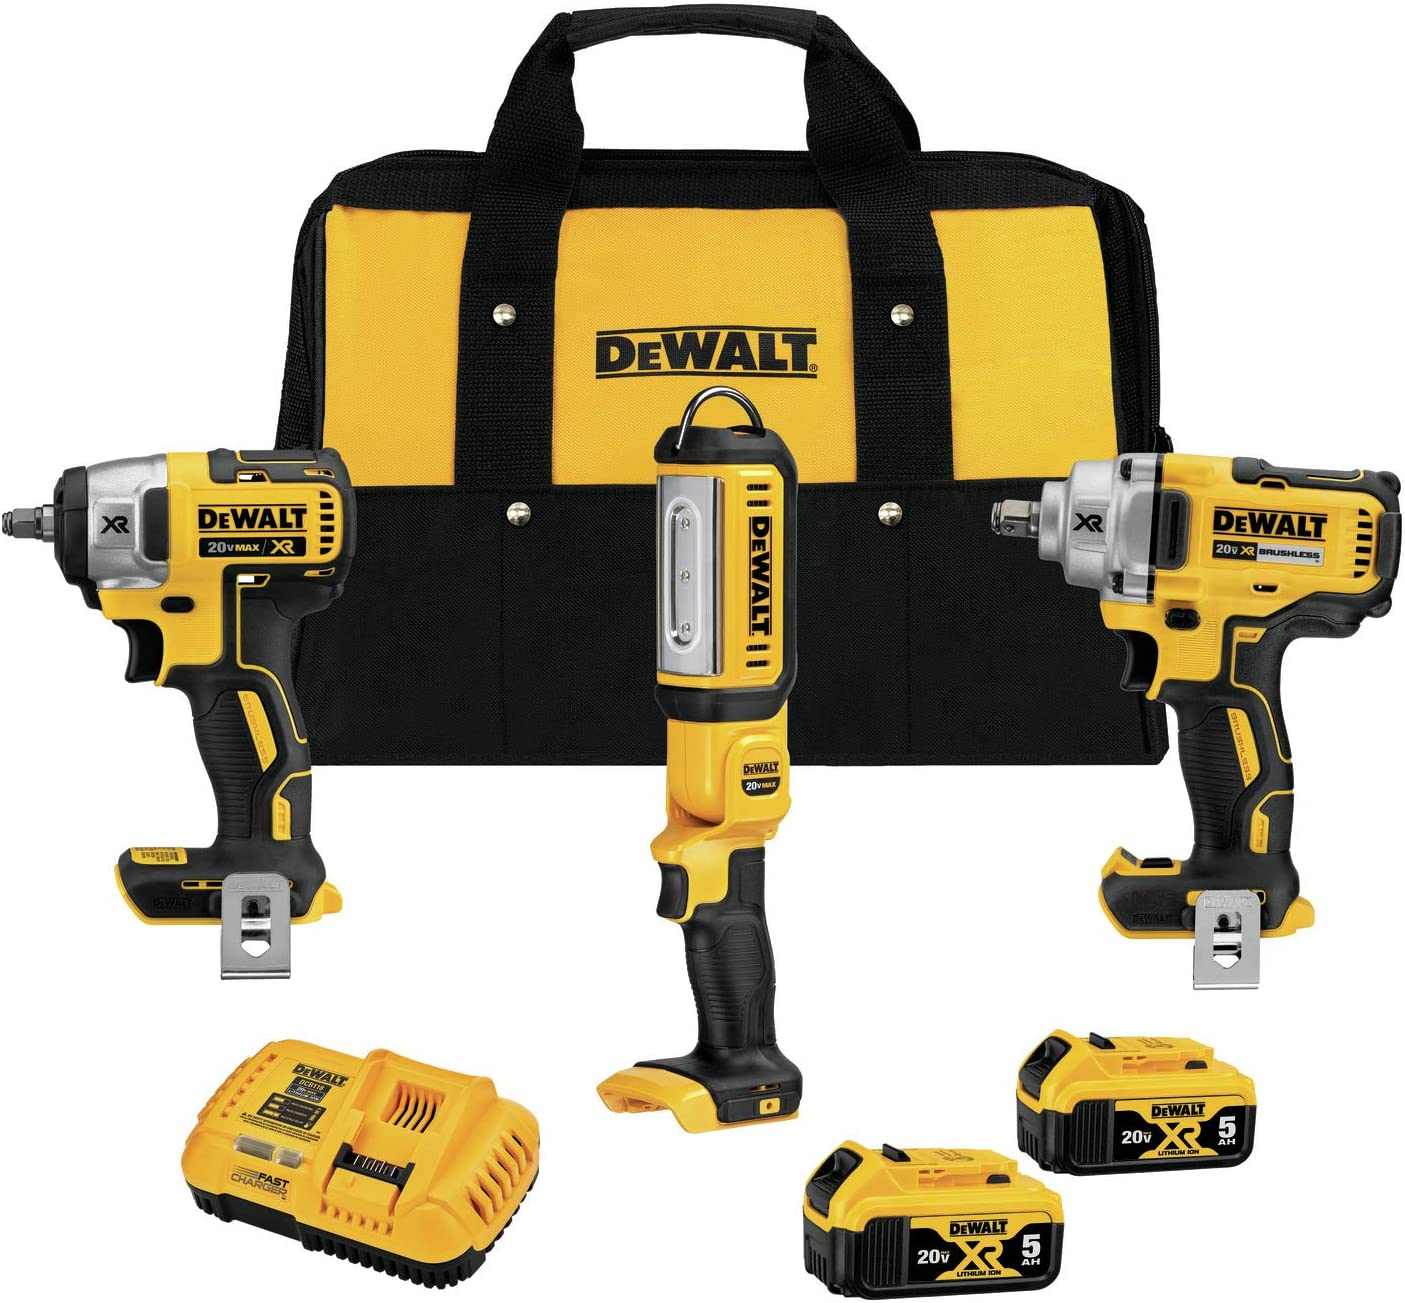 DEWALT 20V MAX XR Impact Wrench Combo Kit, 1/2-Inch & 3/8-Inch with LED Handheld Area Light, 3-Tool (DCK302P2)